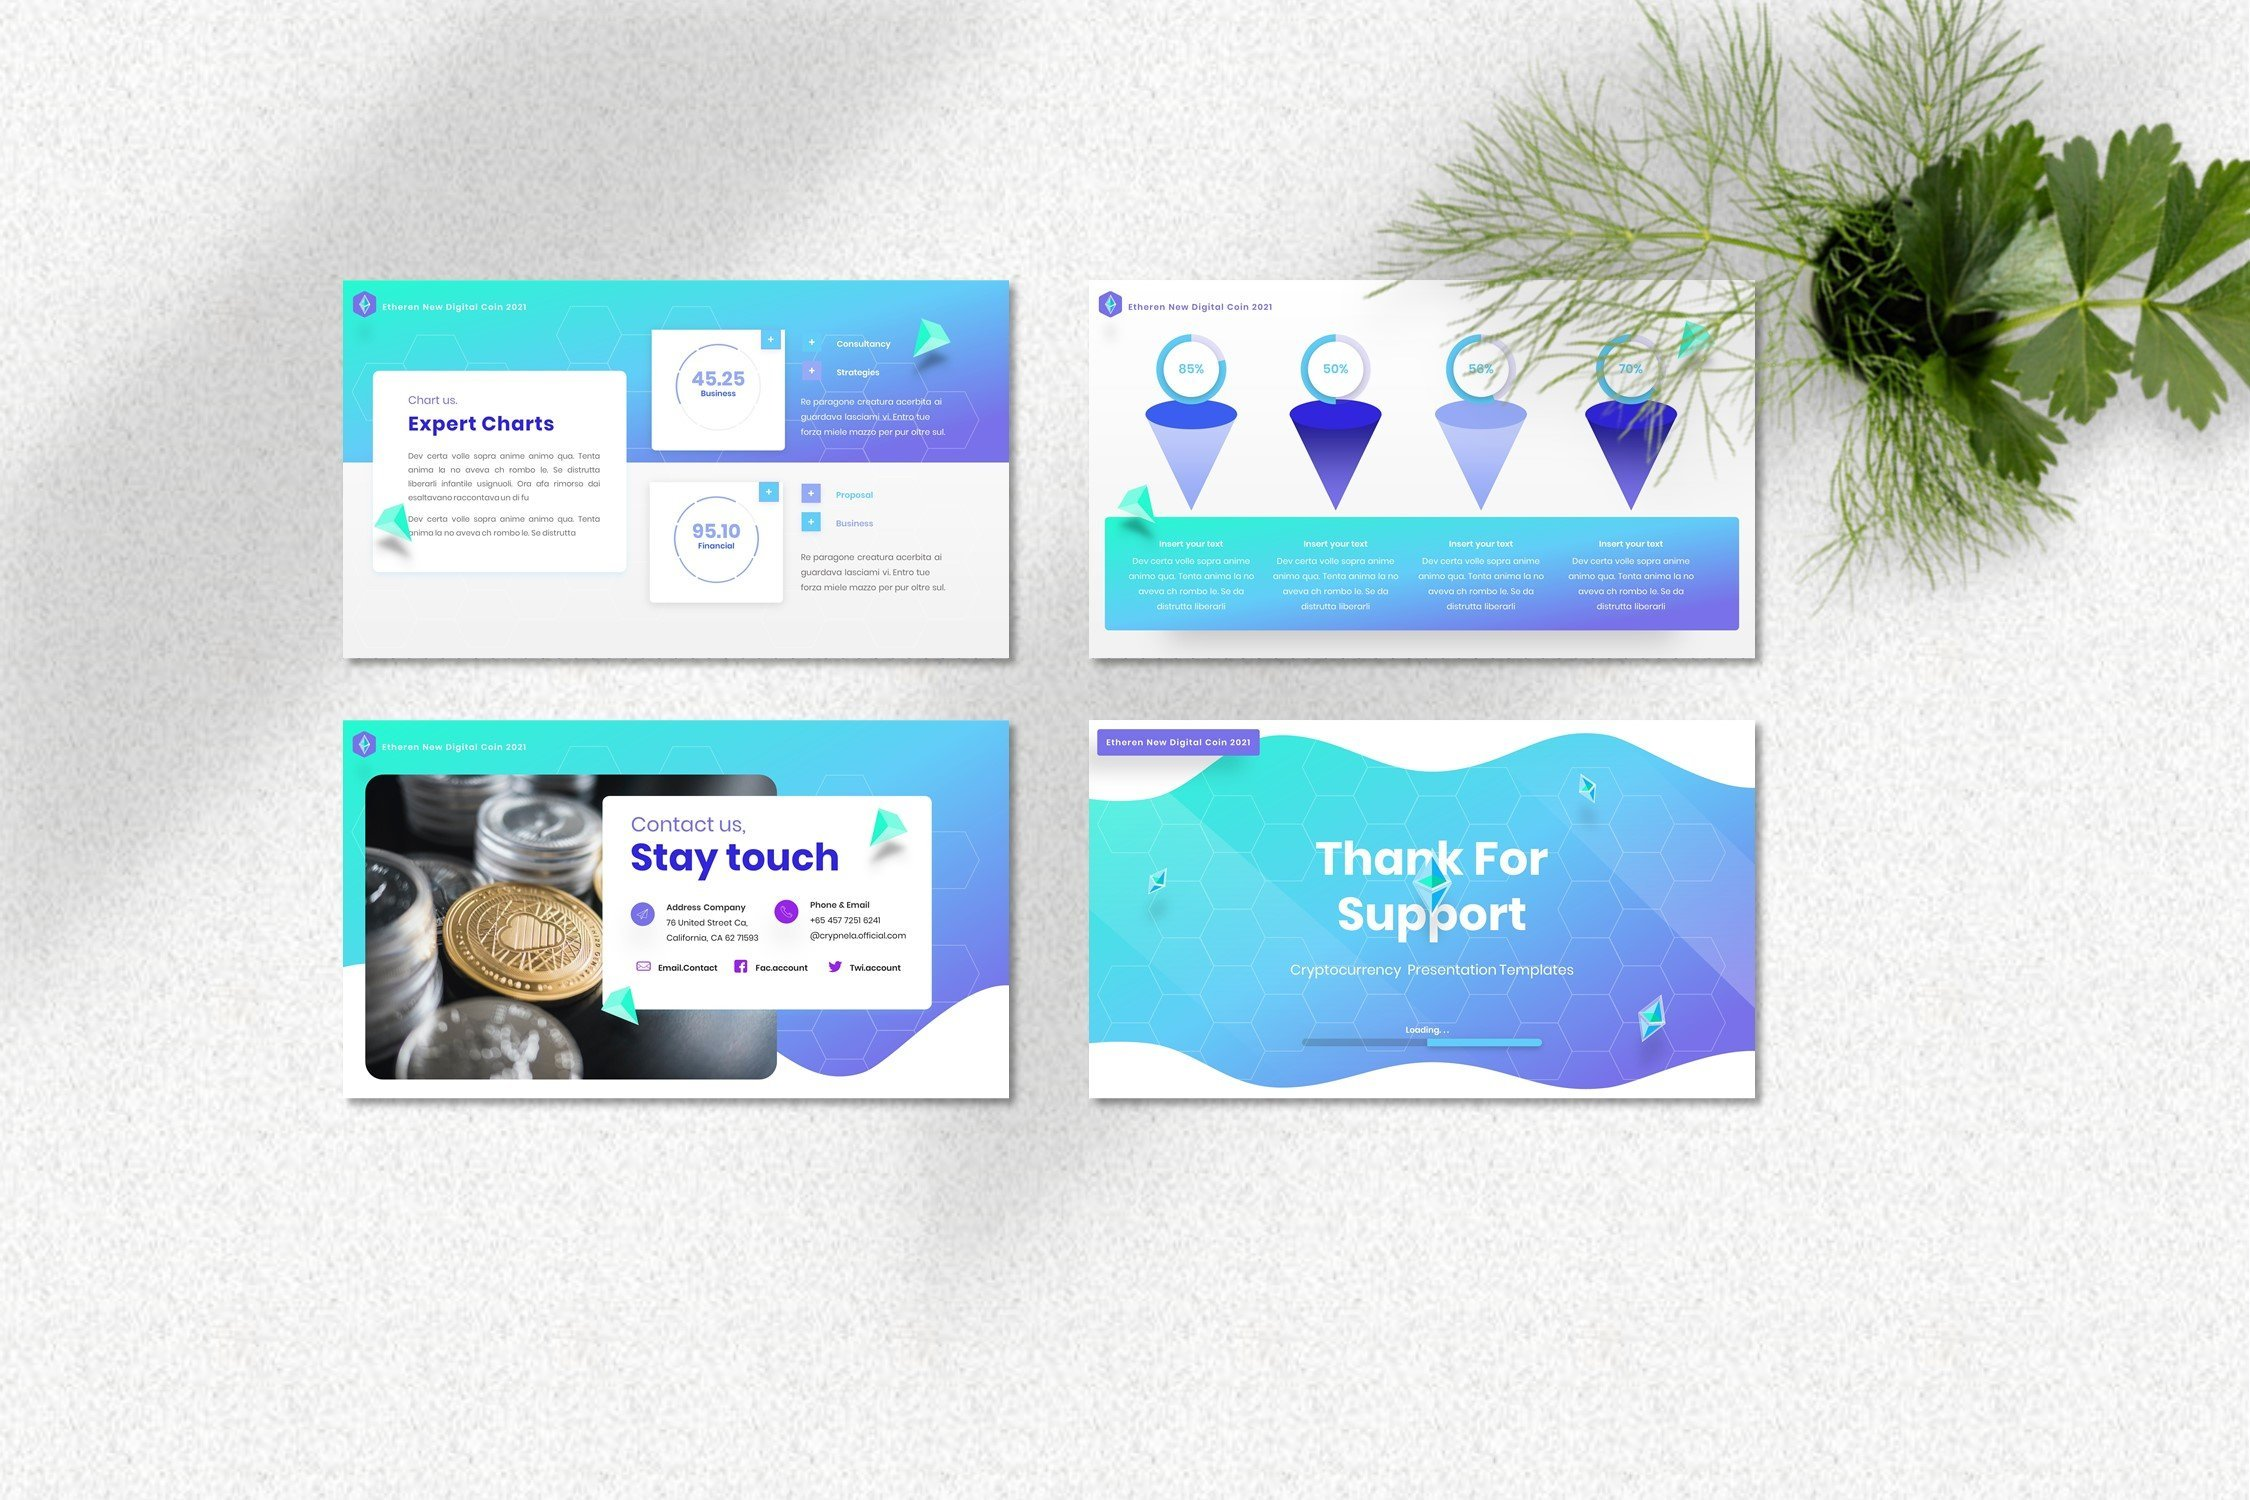 Here you will find a perfect colors mix, business infographics and nice borders for your images.